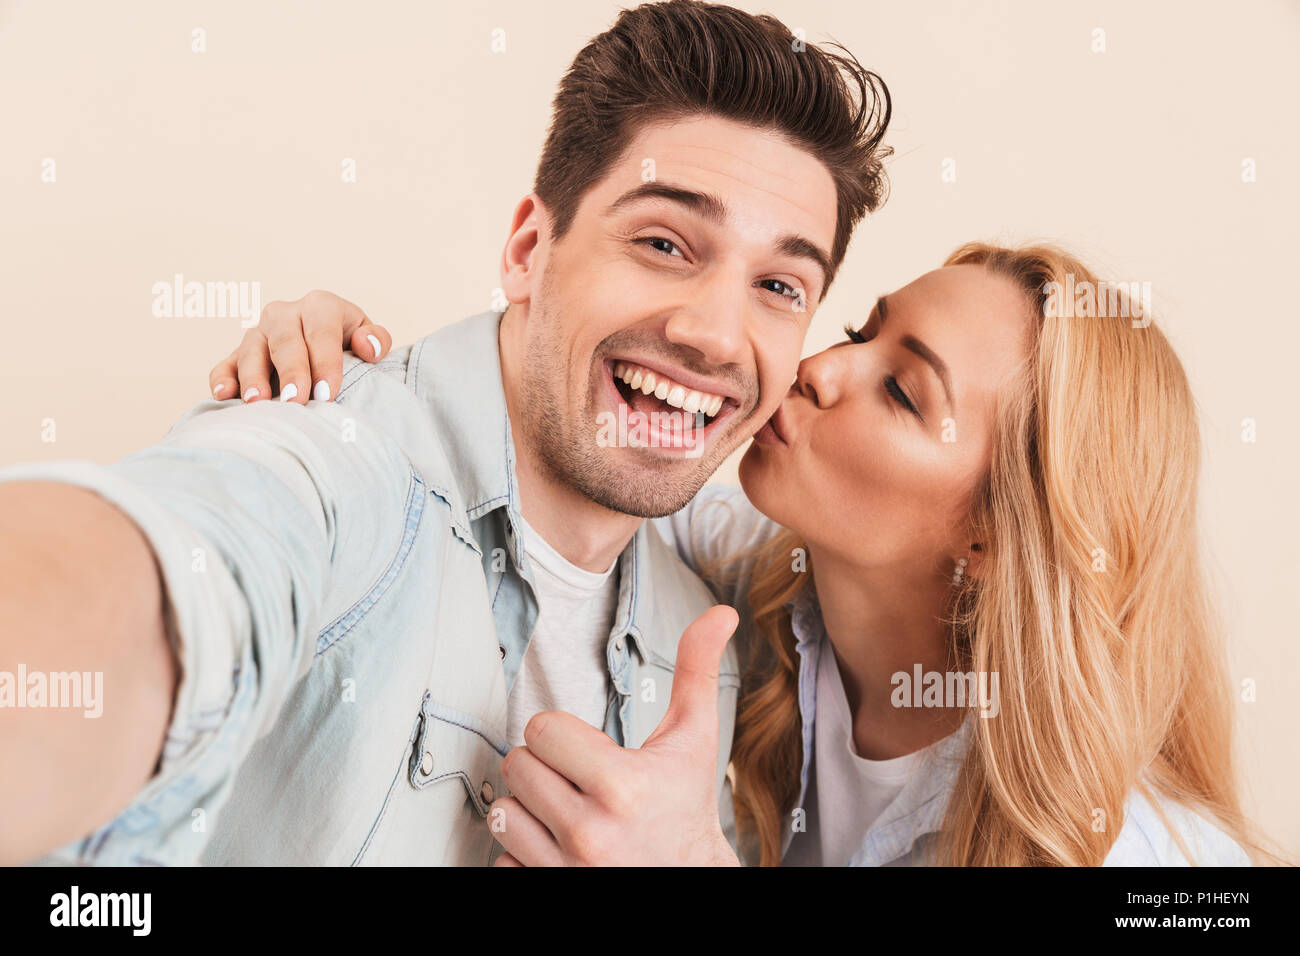 Portrait of happy man taking selfie photo and gesturing thumb up at camera while adorable woman kissing his cheek isolated over yellow background Stock Photo